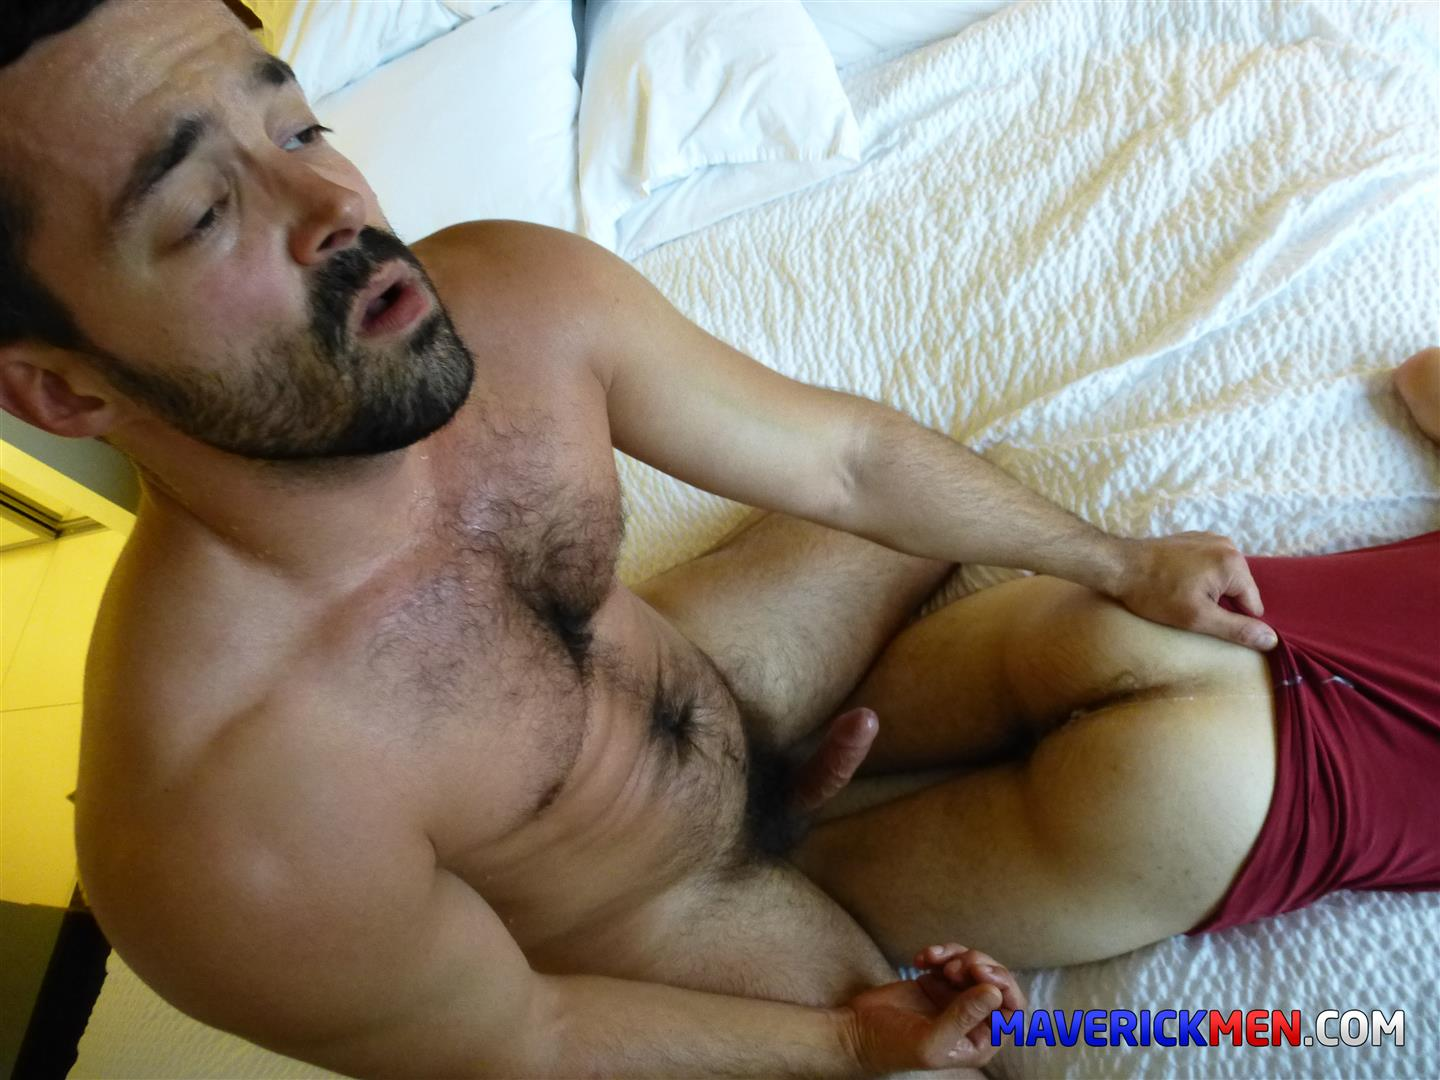 Maverick-Men-Little-Bobby-Hairy-Ass-Virgin-Gets-Barebacked-Amateur-Gay-Porn-10 Hairy Ass Young Virgin Gets Barebacked By Two Muscle Daddies